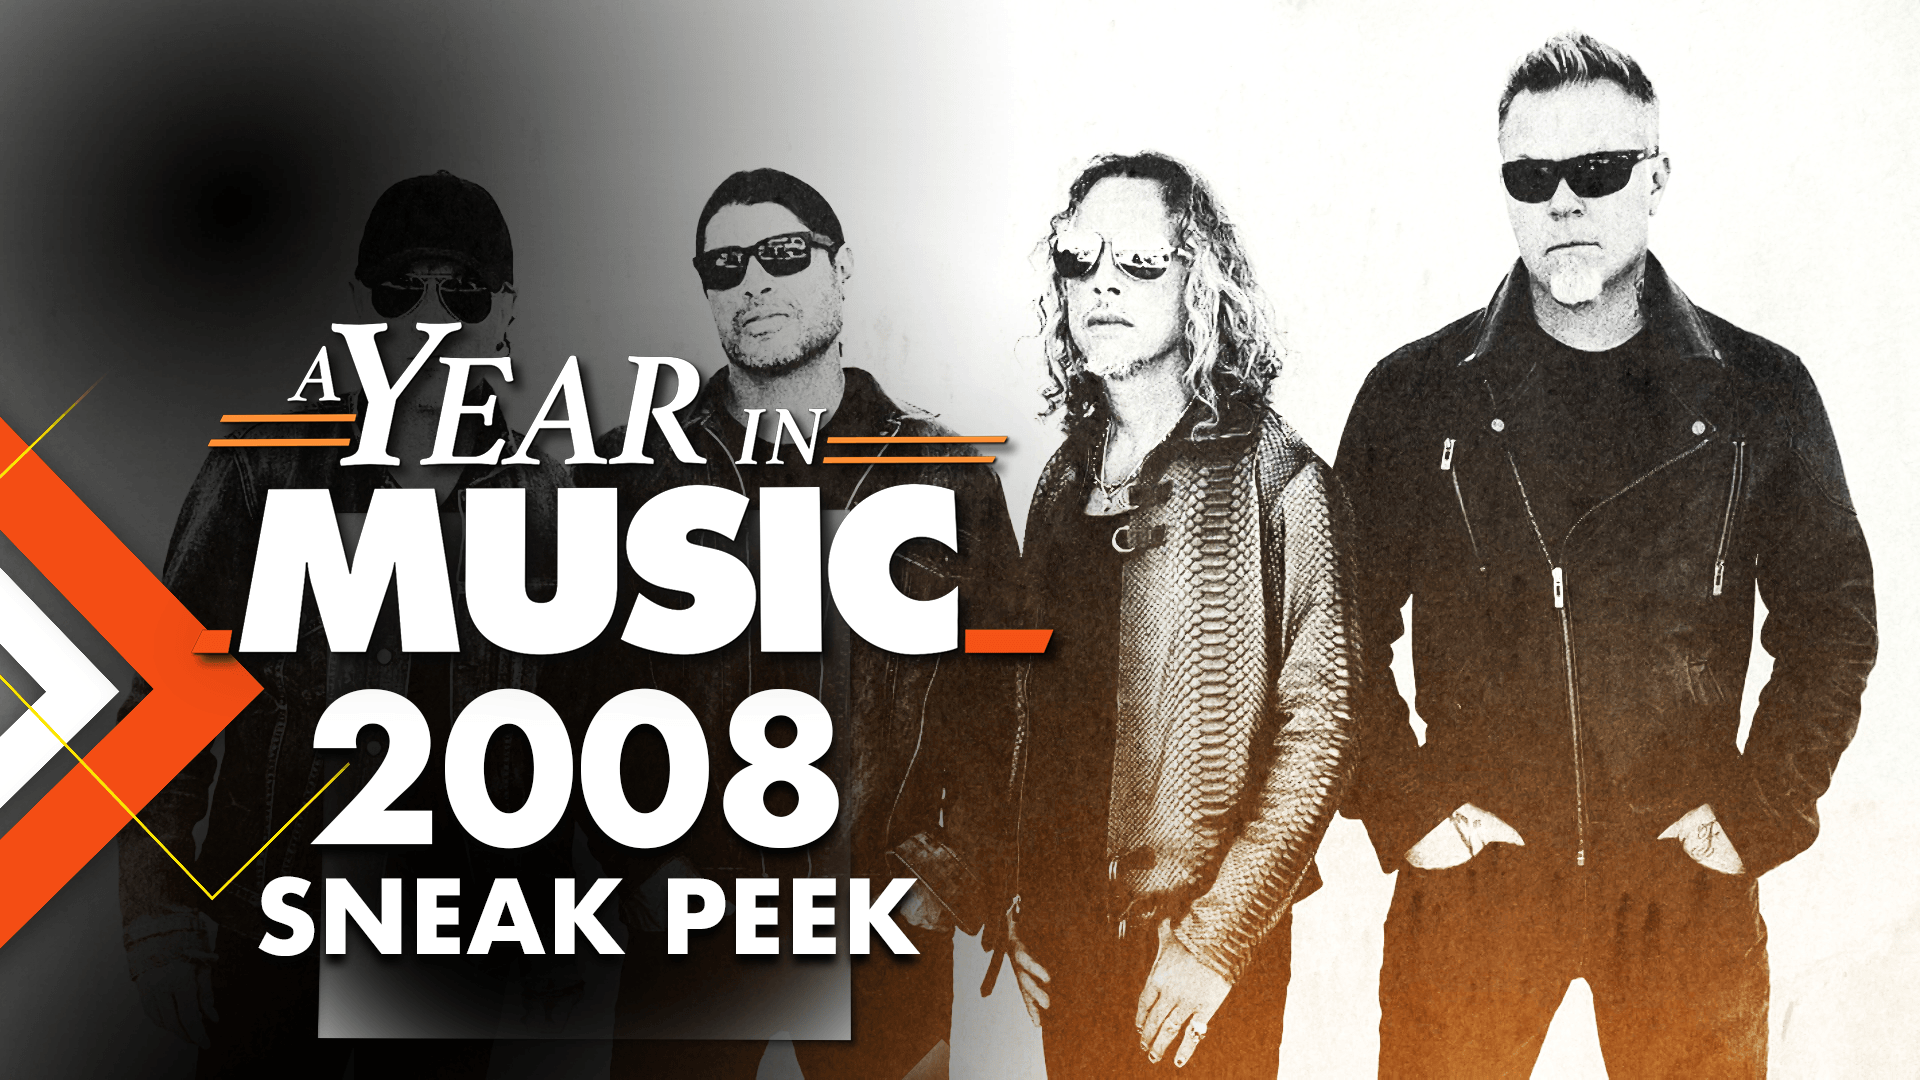 A Year in Music: 2008 Sneak Peek